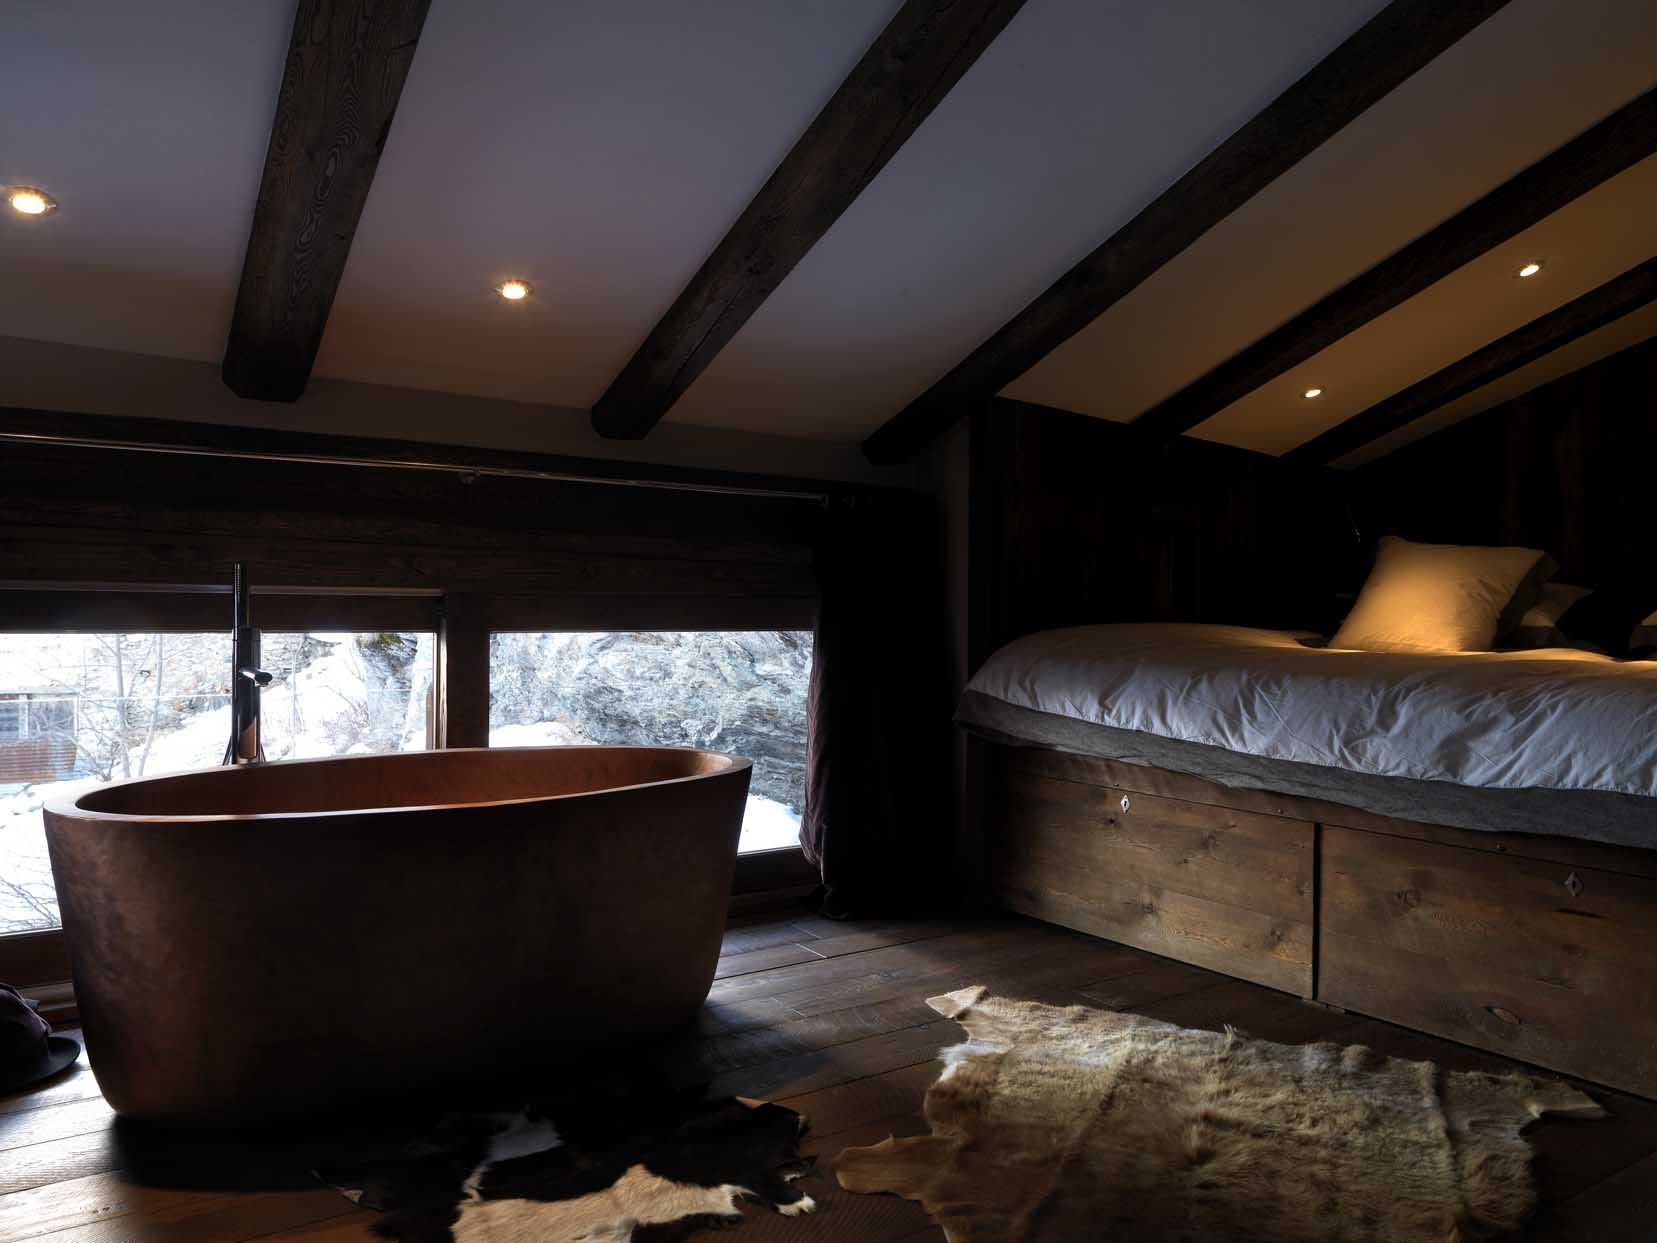 Bedroom 5 with copper bath tub